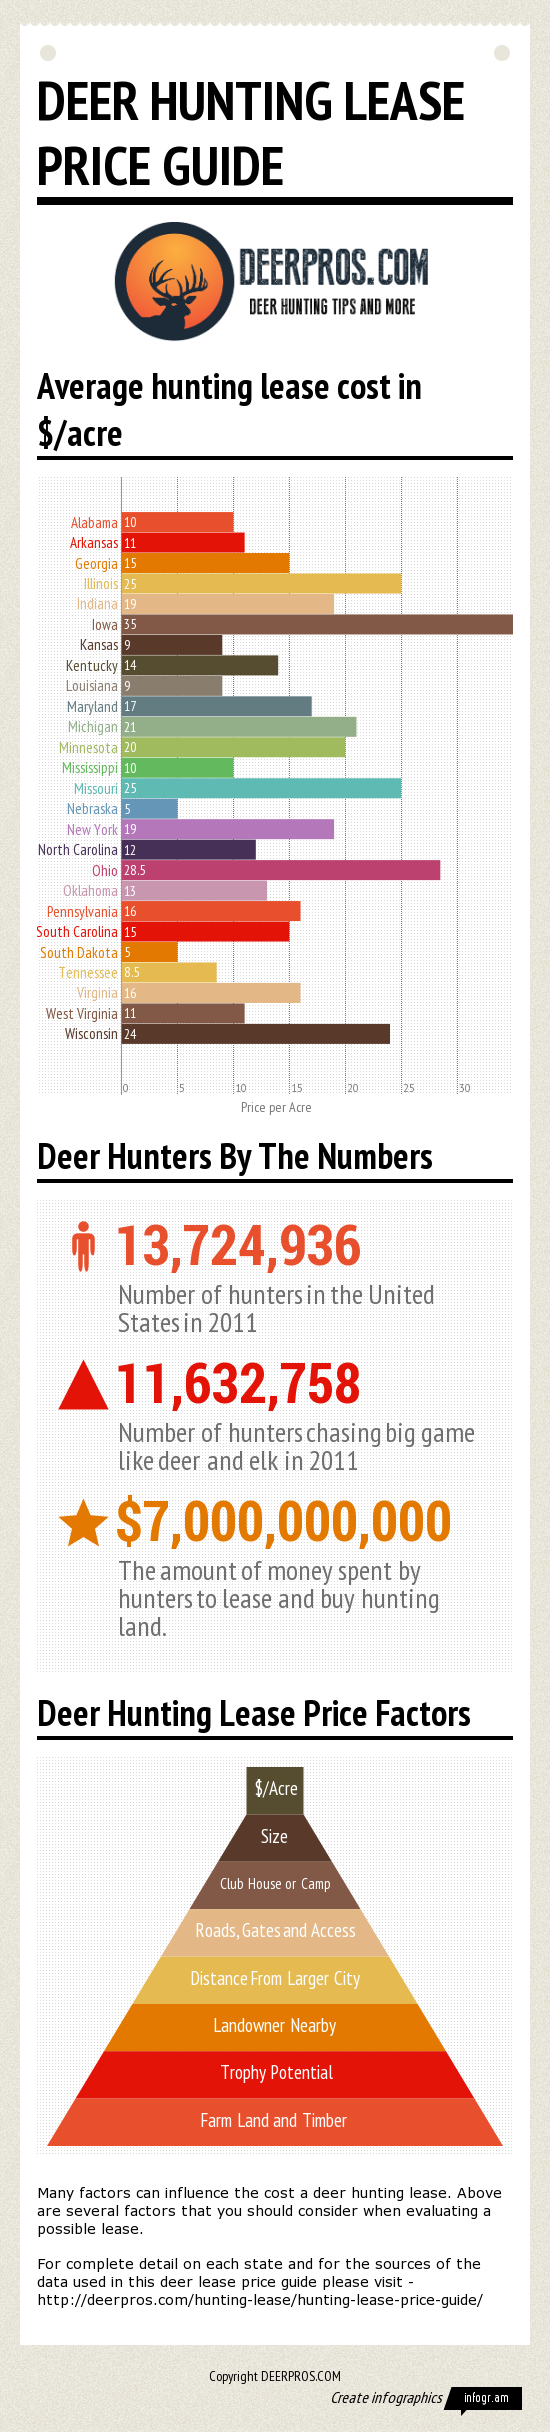 You Can't Have Your Deer Hunting and Watch It, Too | Field